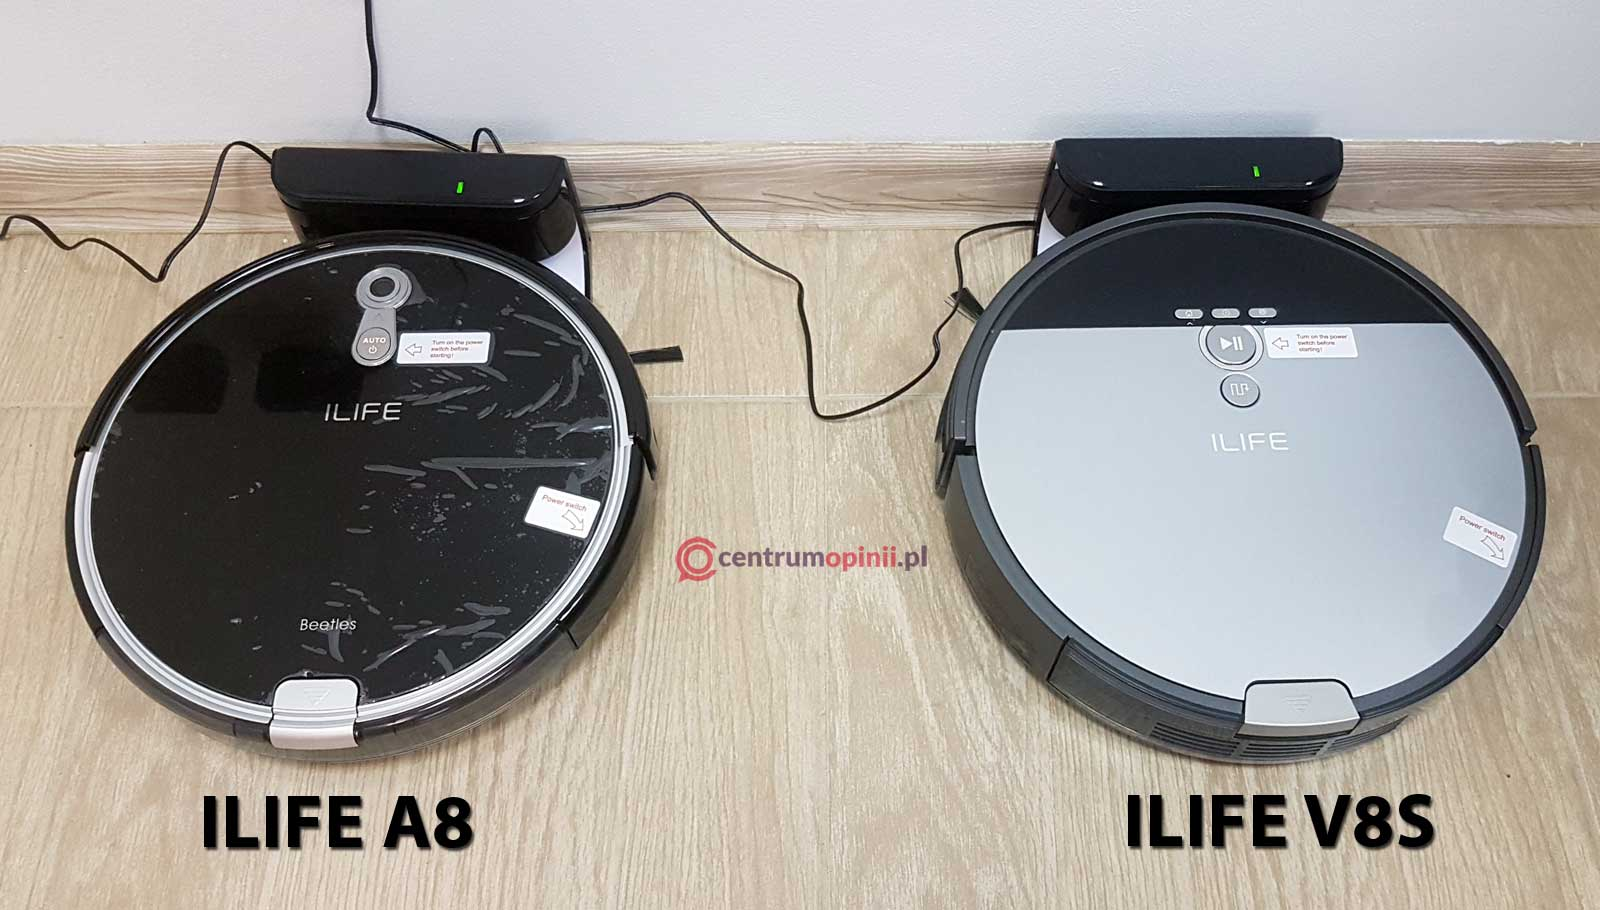 Ilife A8 opinie